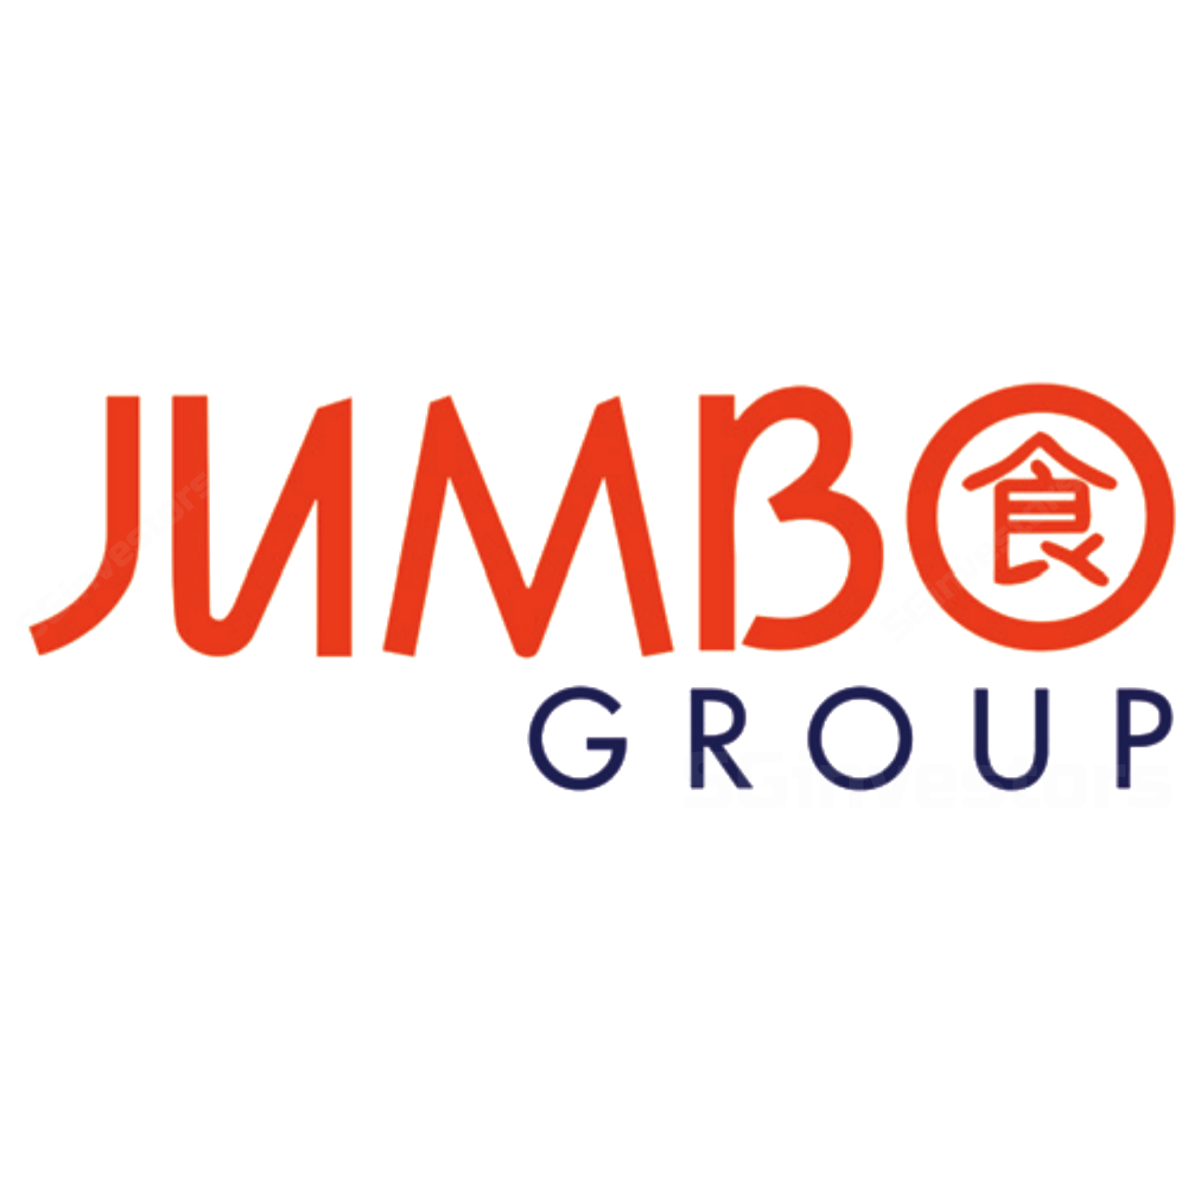 Jumbo Group (JUMBO SP) - UOB Kay Hian 2018-05-16: 2qfy18 Results Below Expectations; Higher Cost Base To Support Expansion